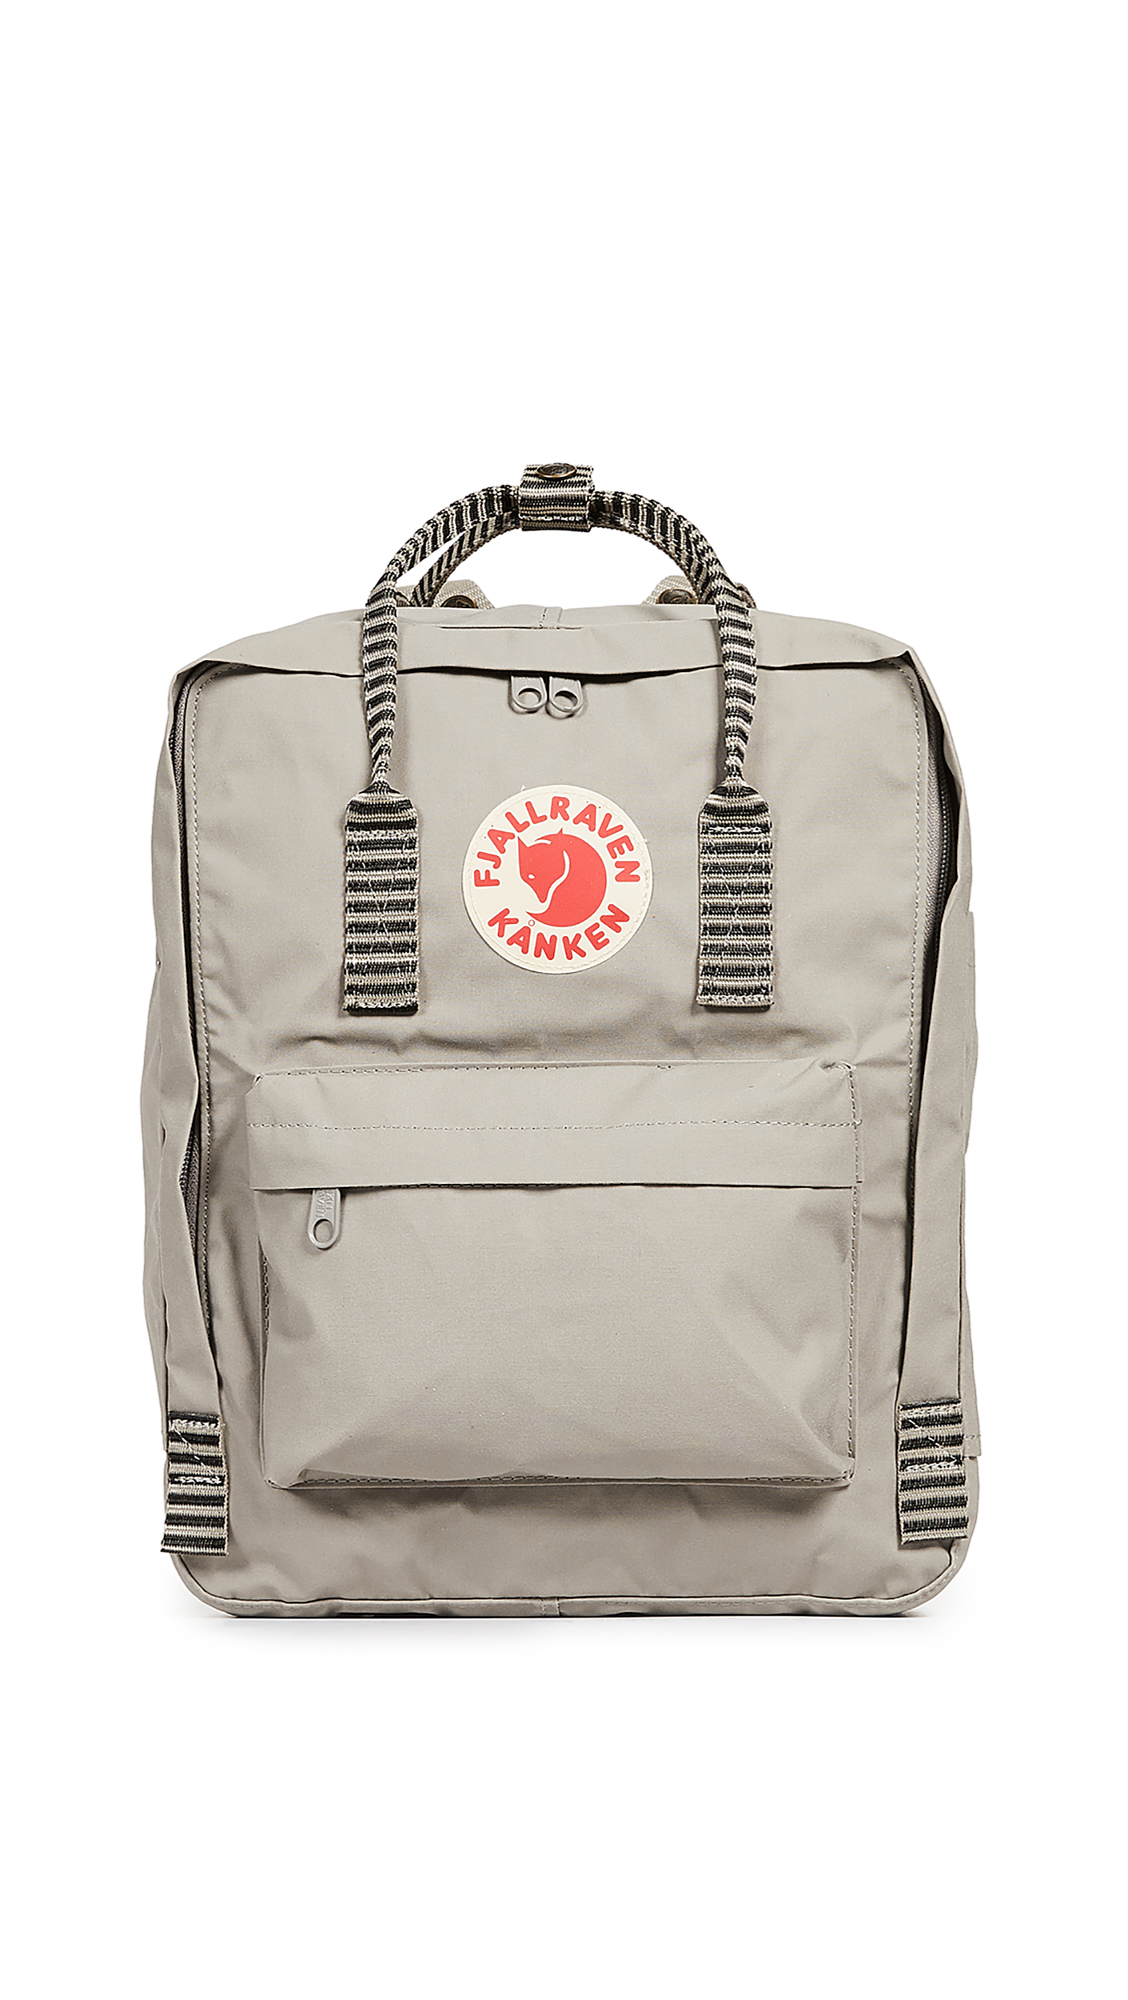 FJALL RAVEN Kanken Backpack in Fog/Striped